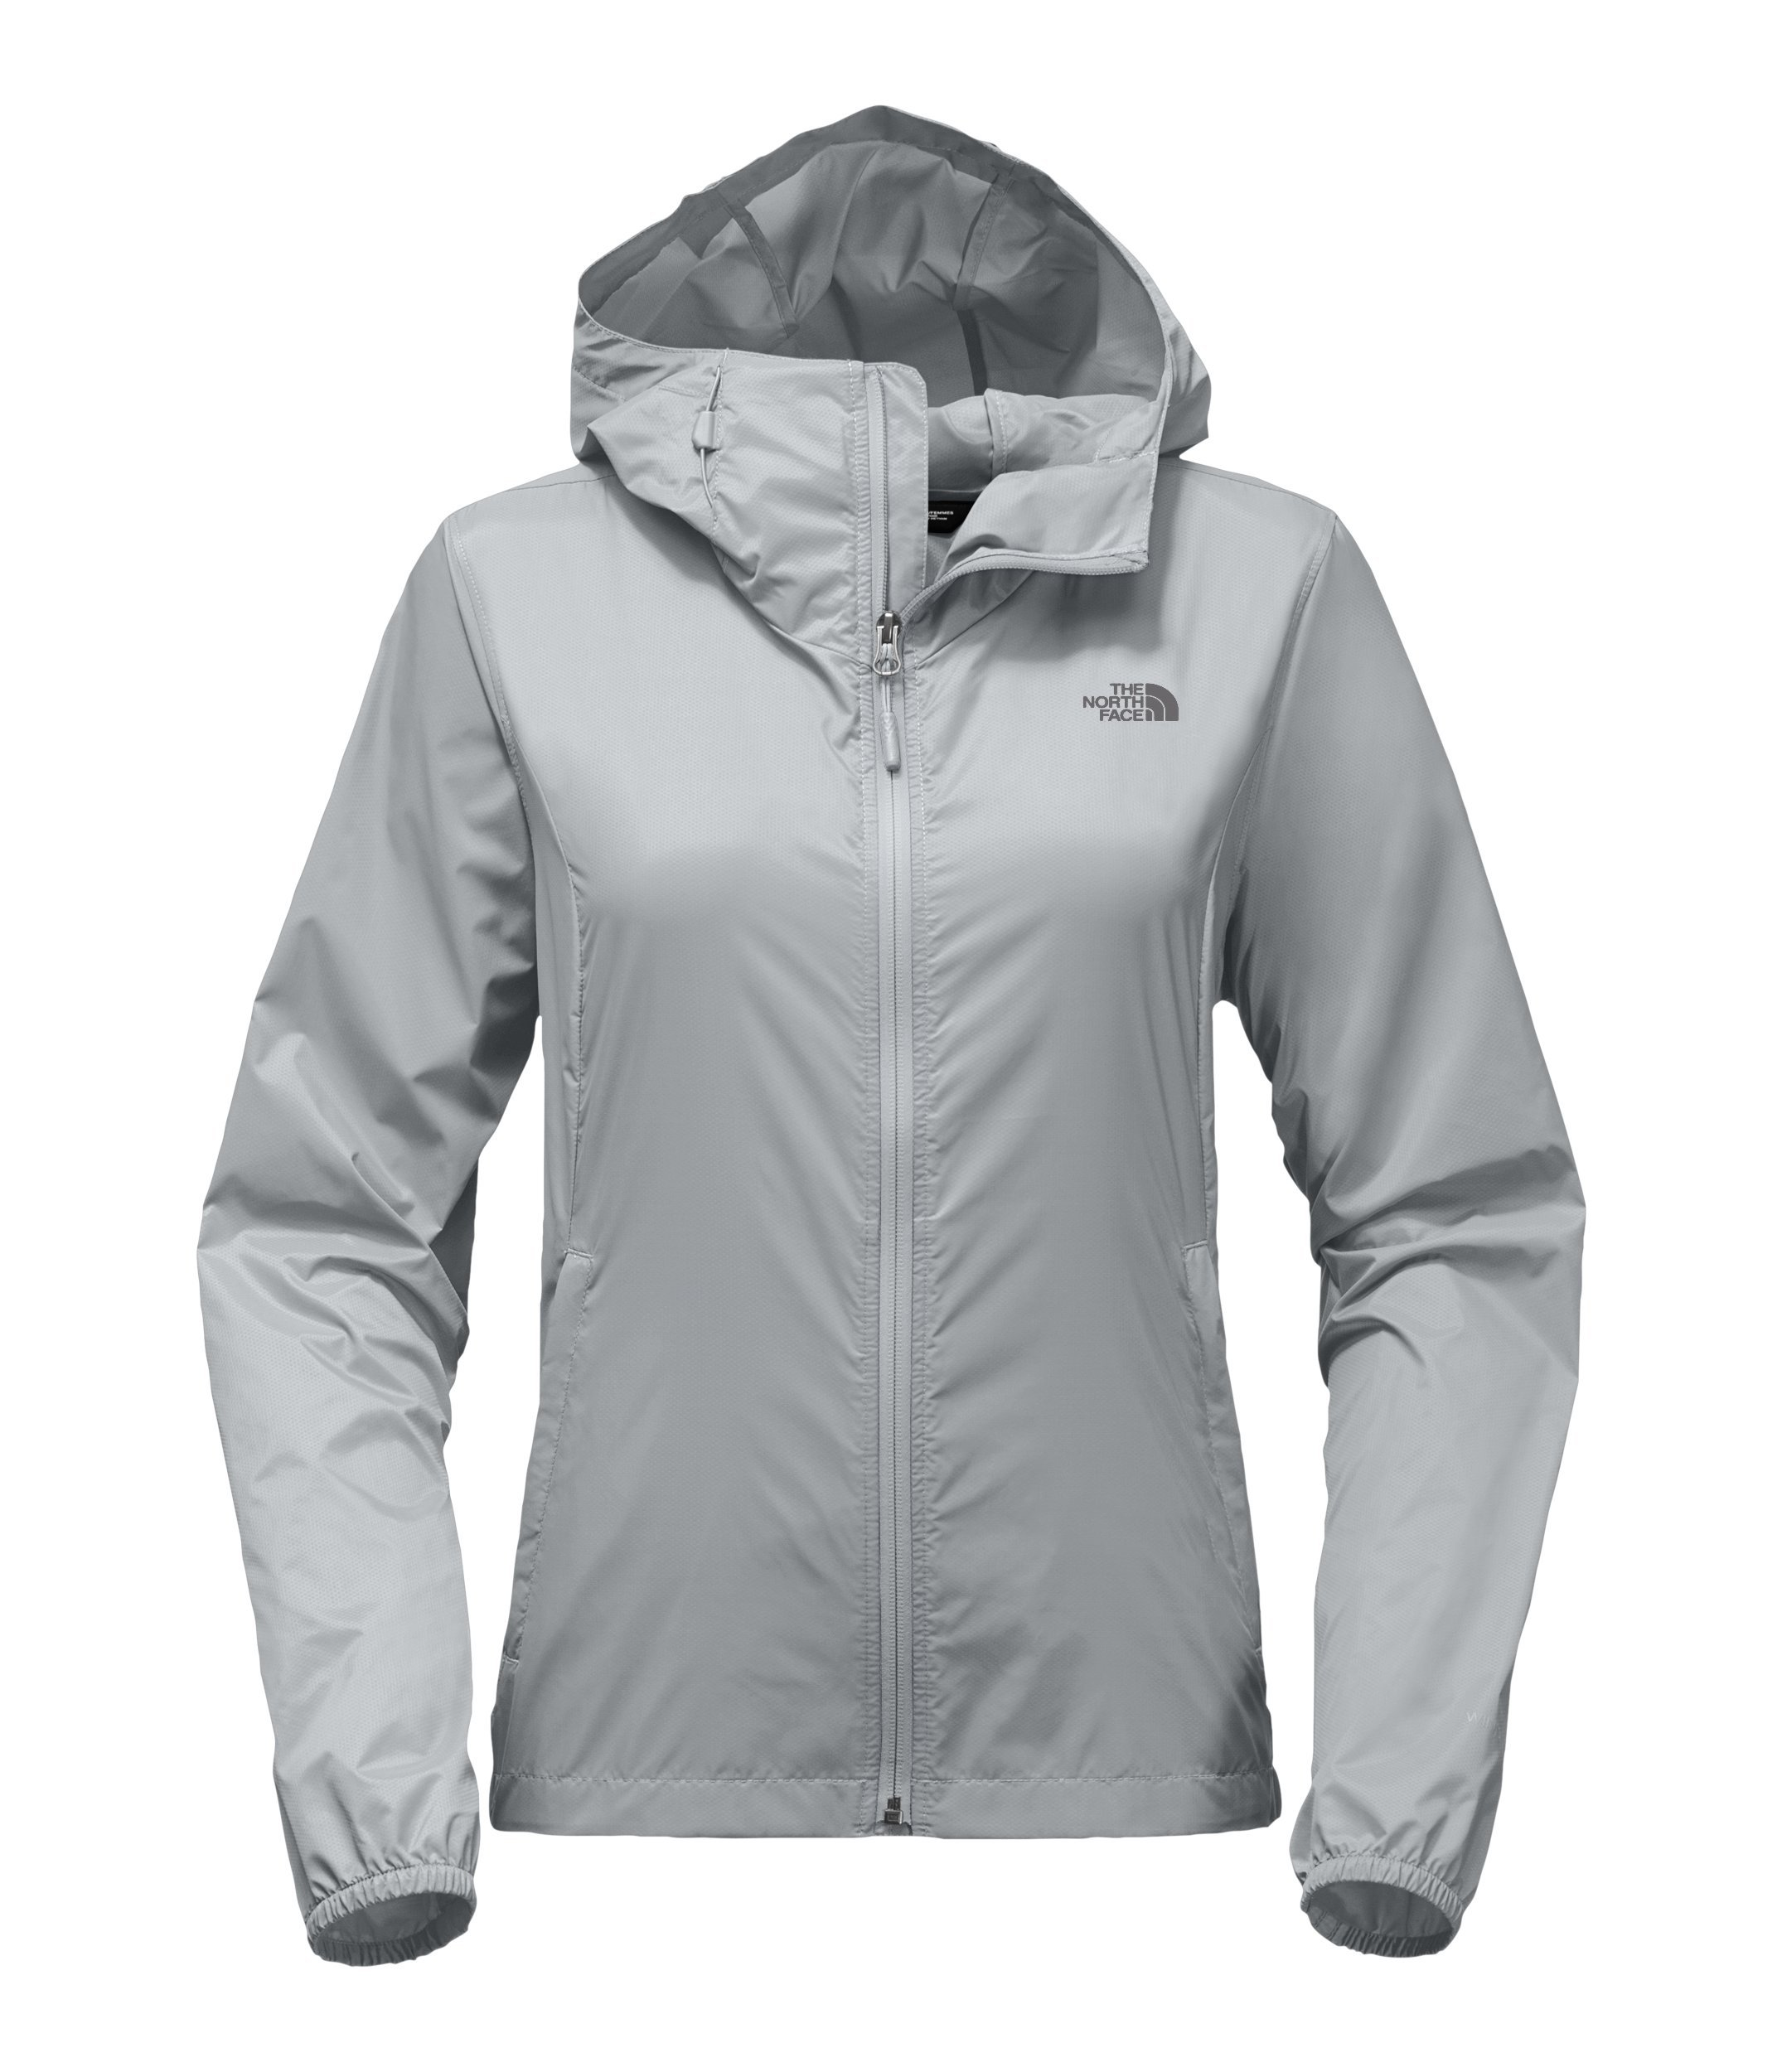 The North Face Women's Cyclone 2 Hoodie - High Rise Grey - M